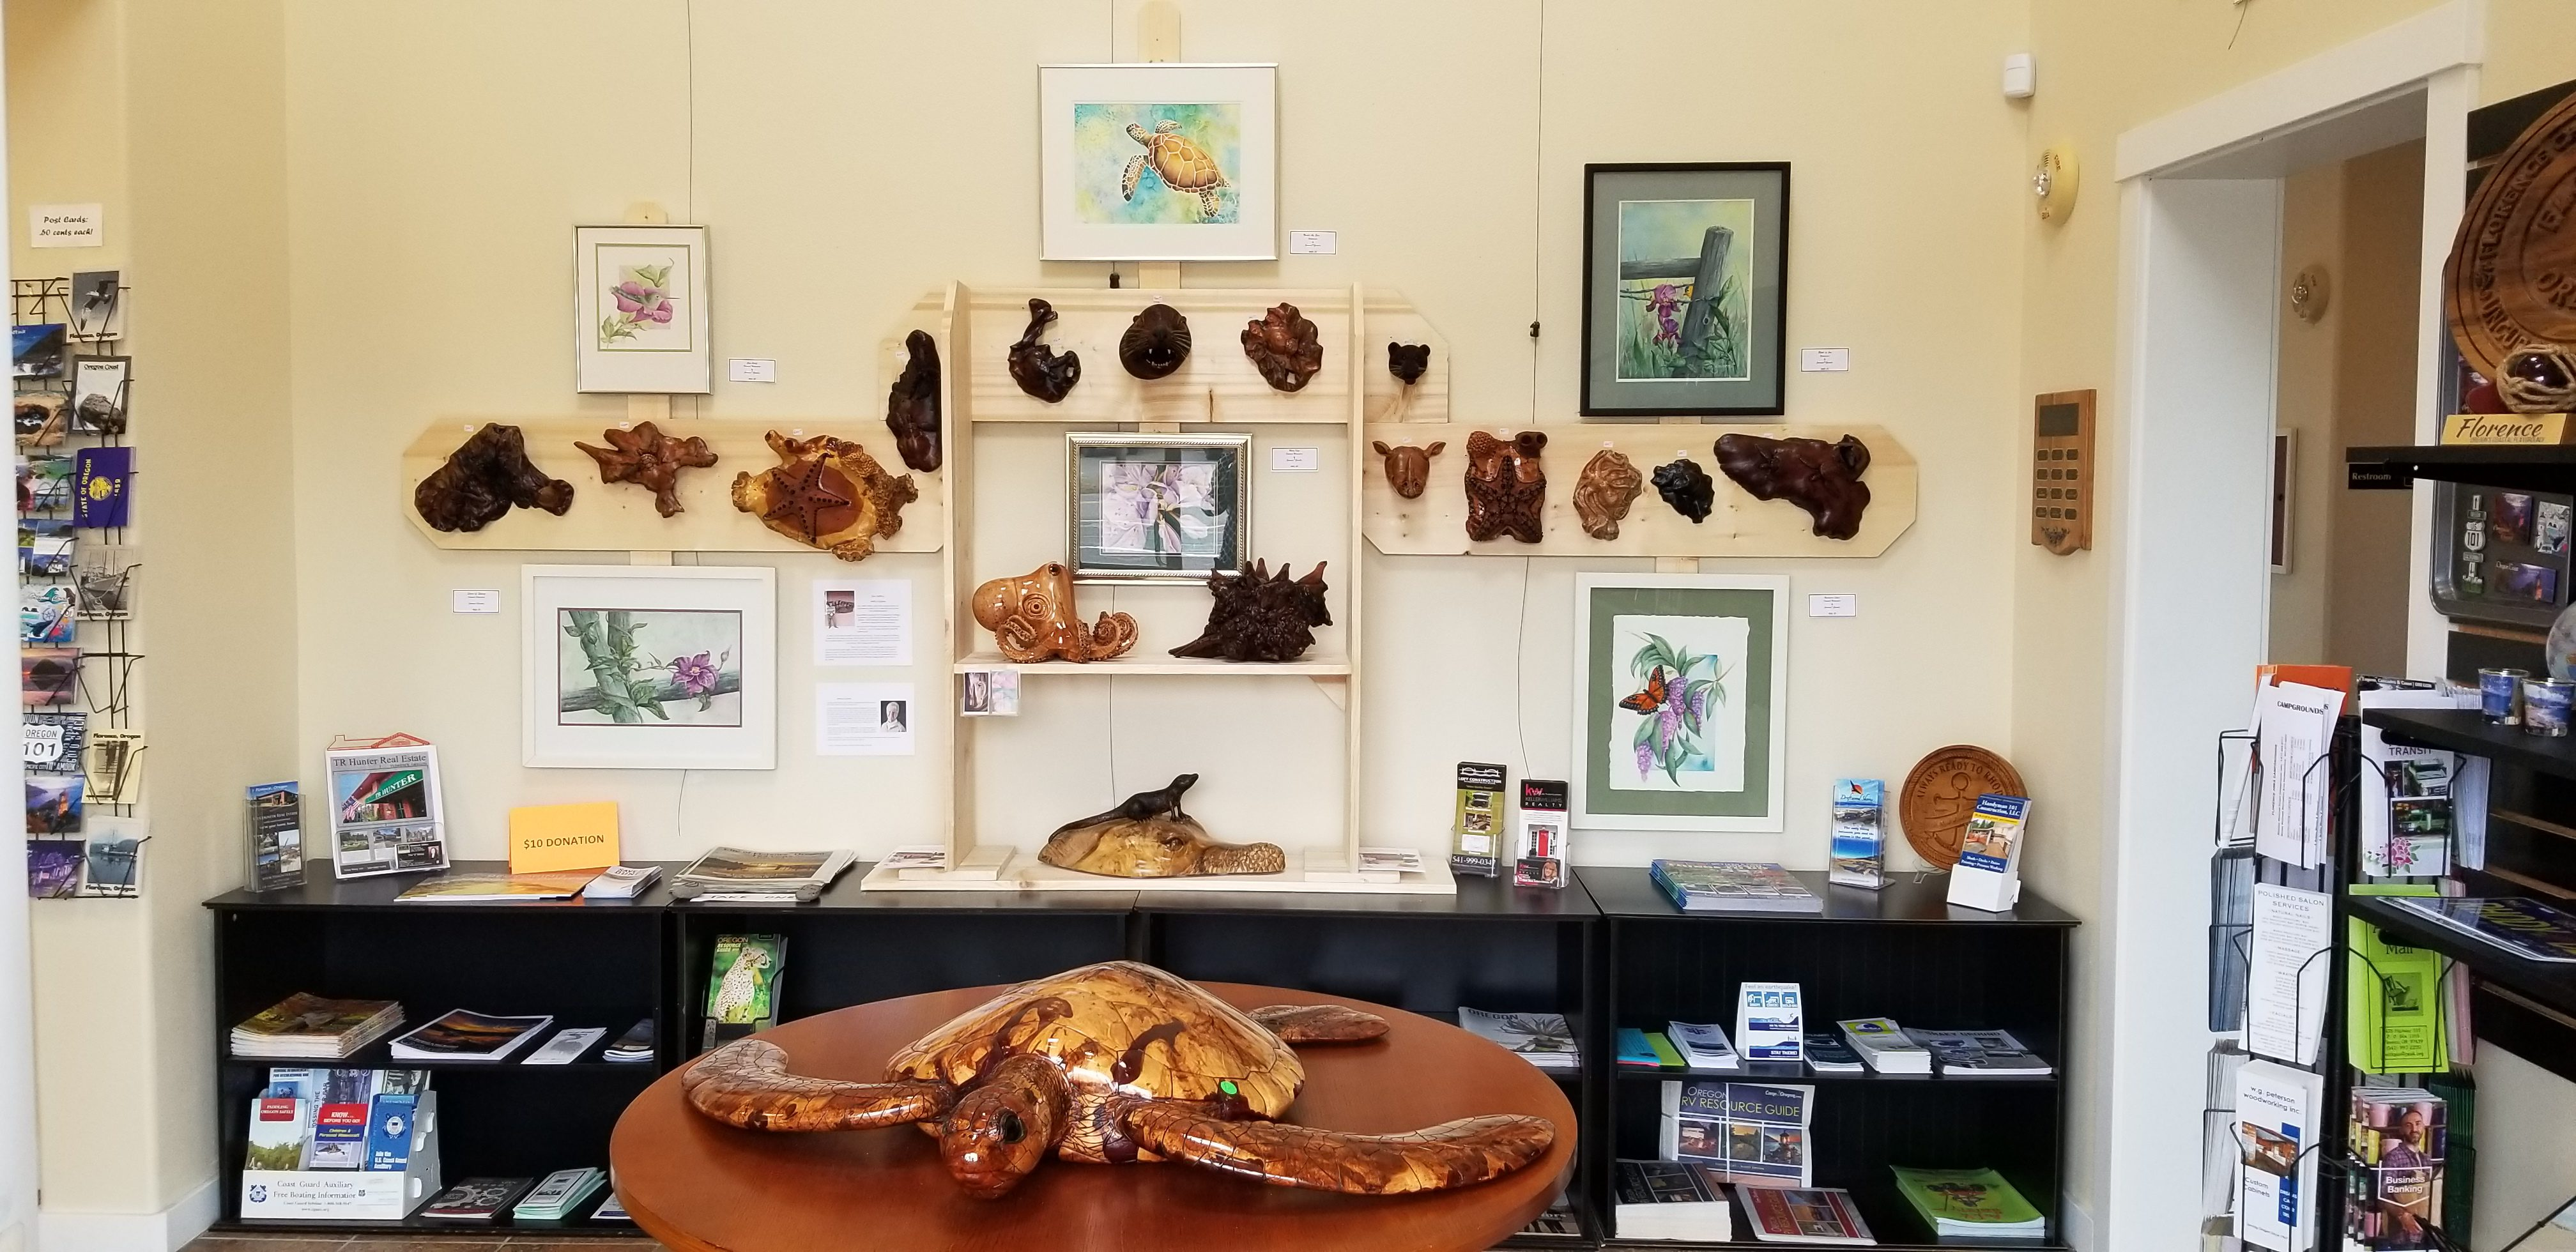 Heffy Gallery Exhibits at the Visitors Center